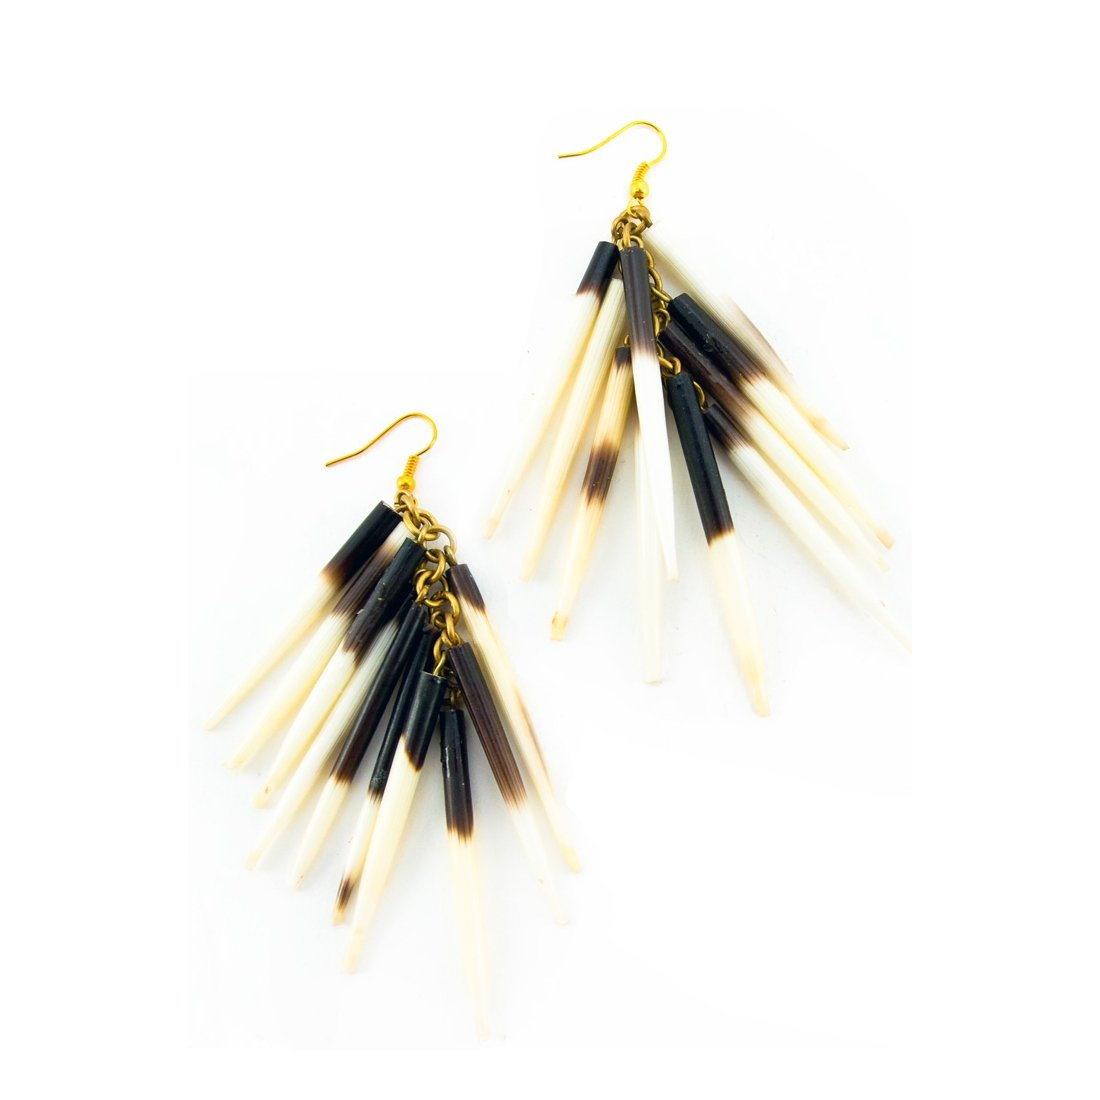 Authentic African Porcupine Quill Fishhook Earrings by Boutique Africa